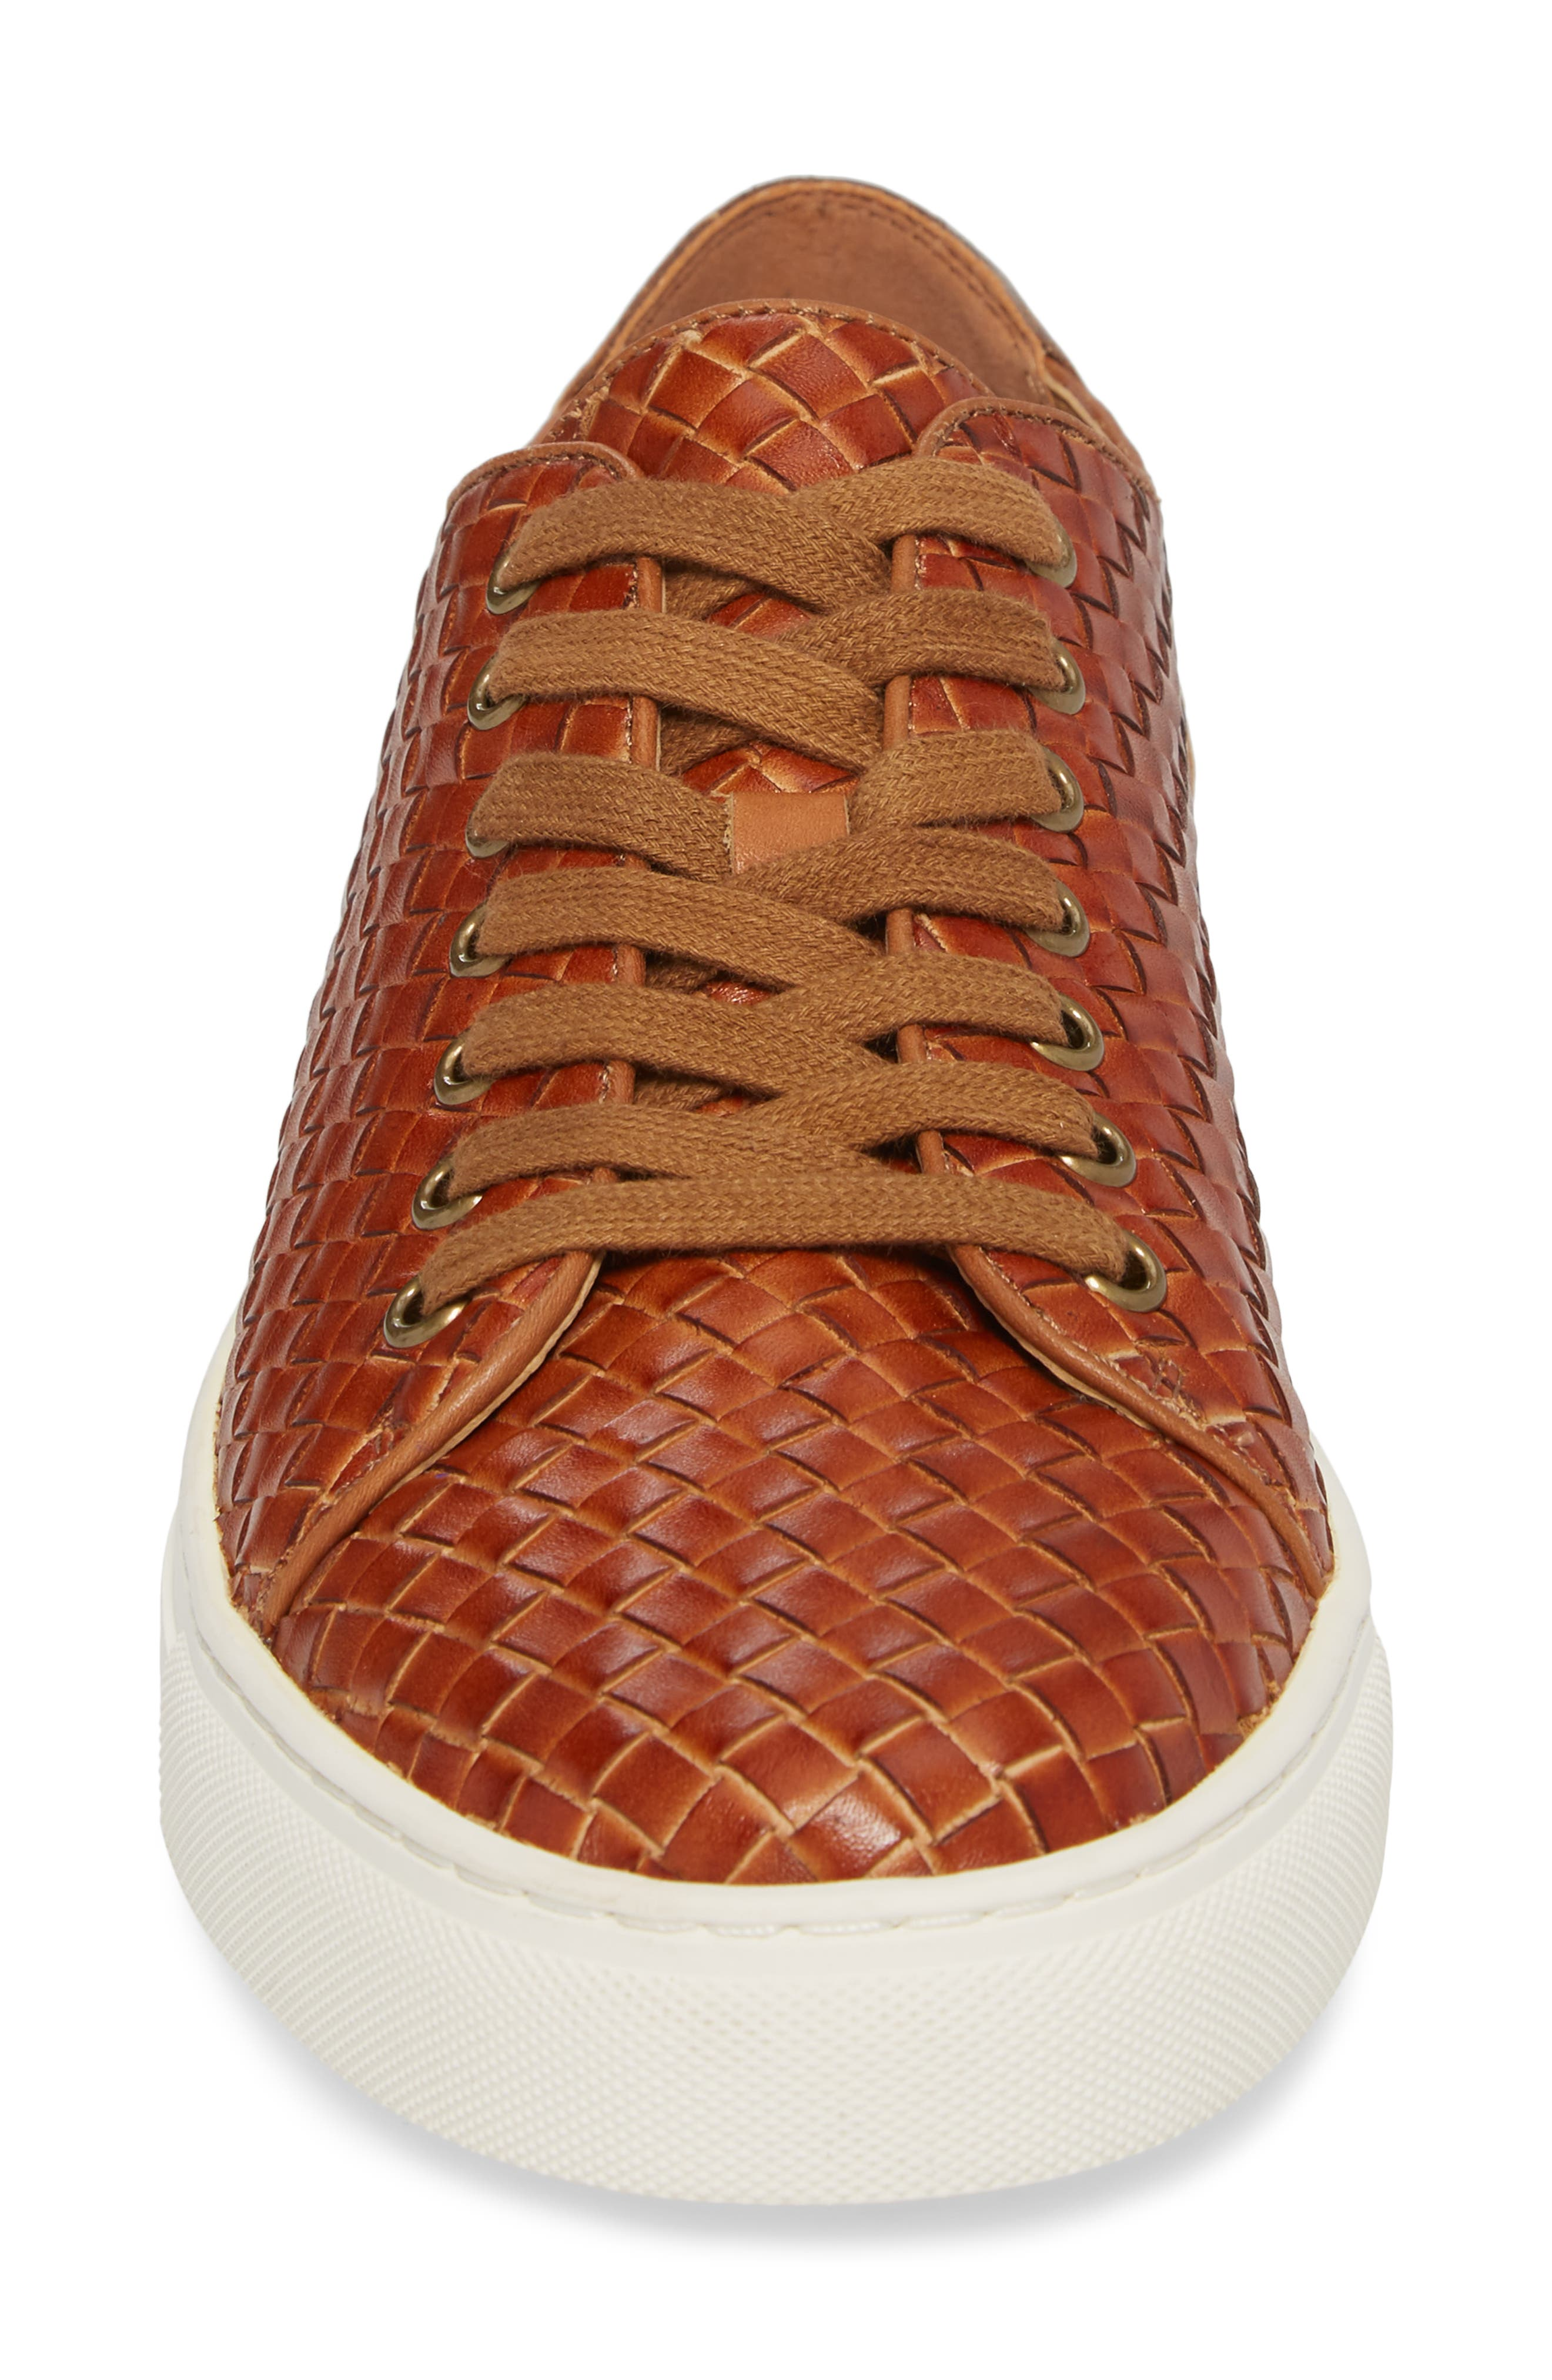 Alto Woven Low Top Sneaker,                             Alternate thumbnail 4, color,                             Saddle Leather